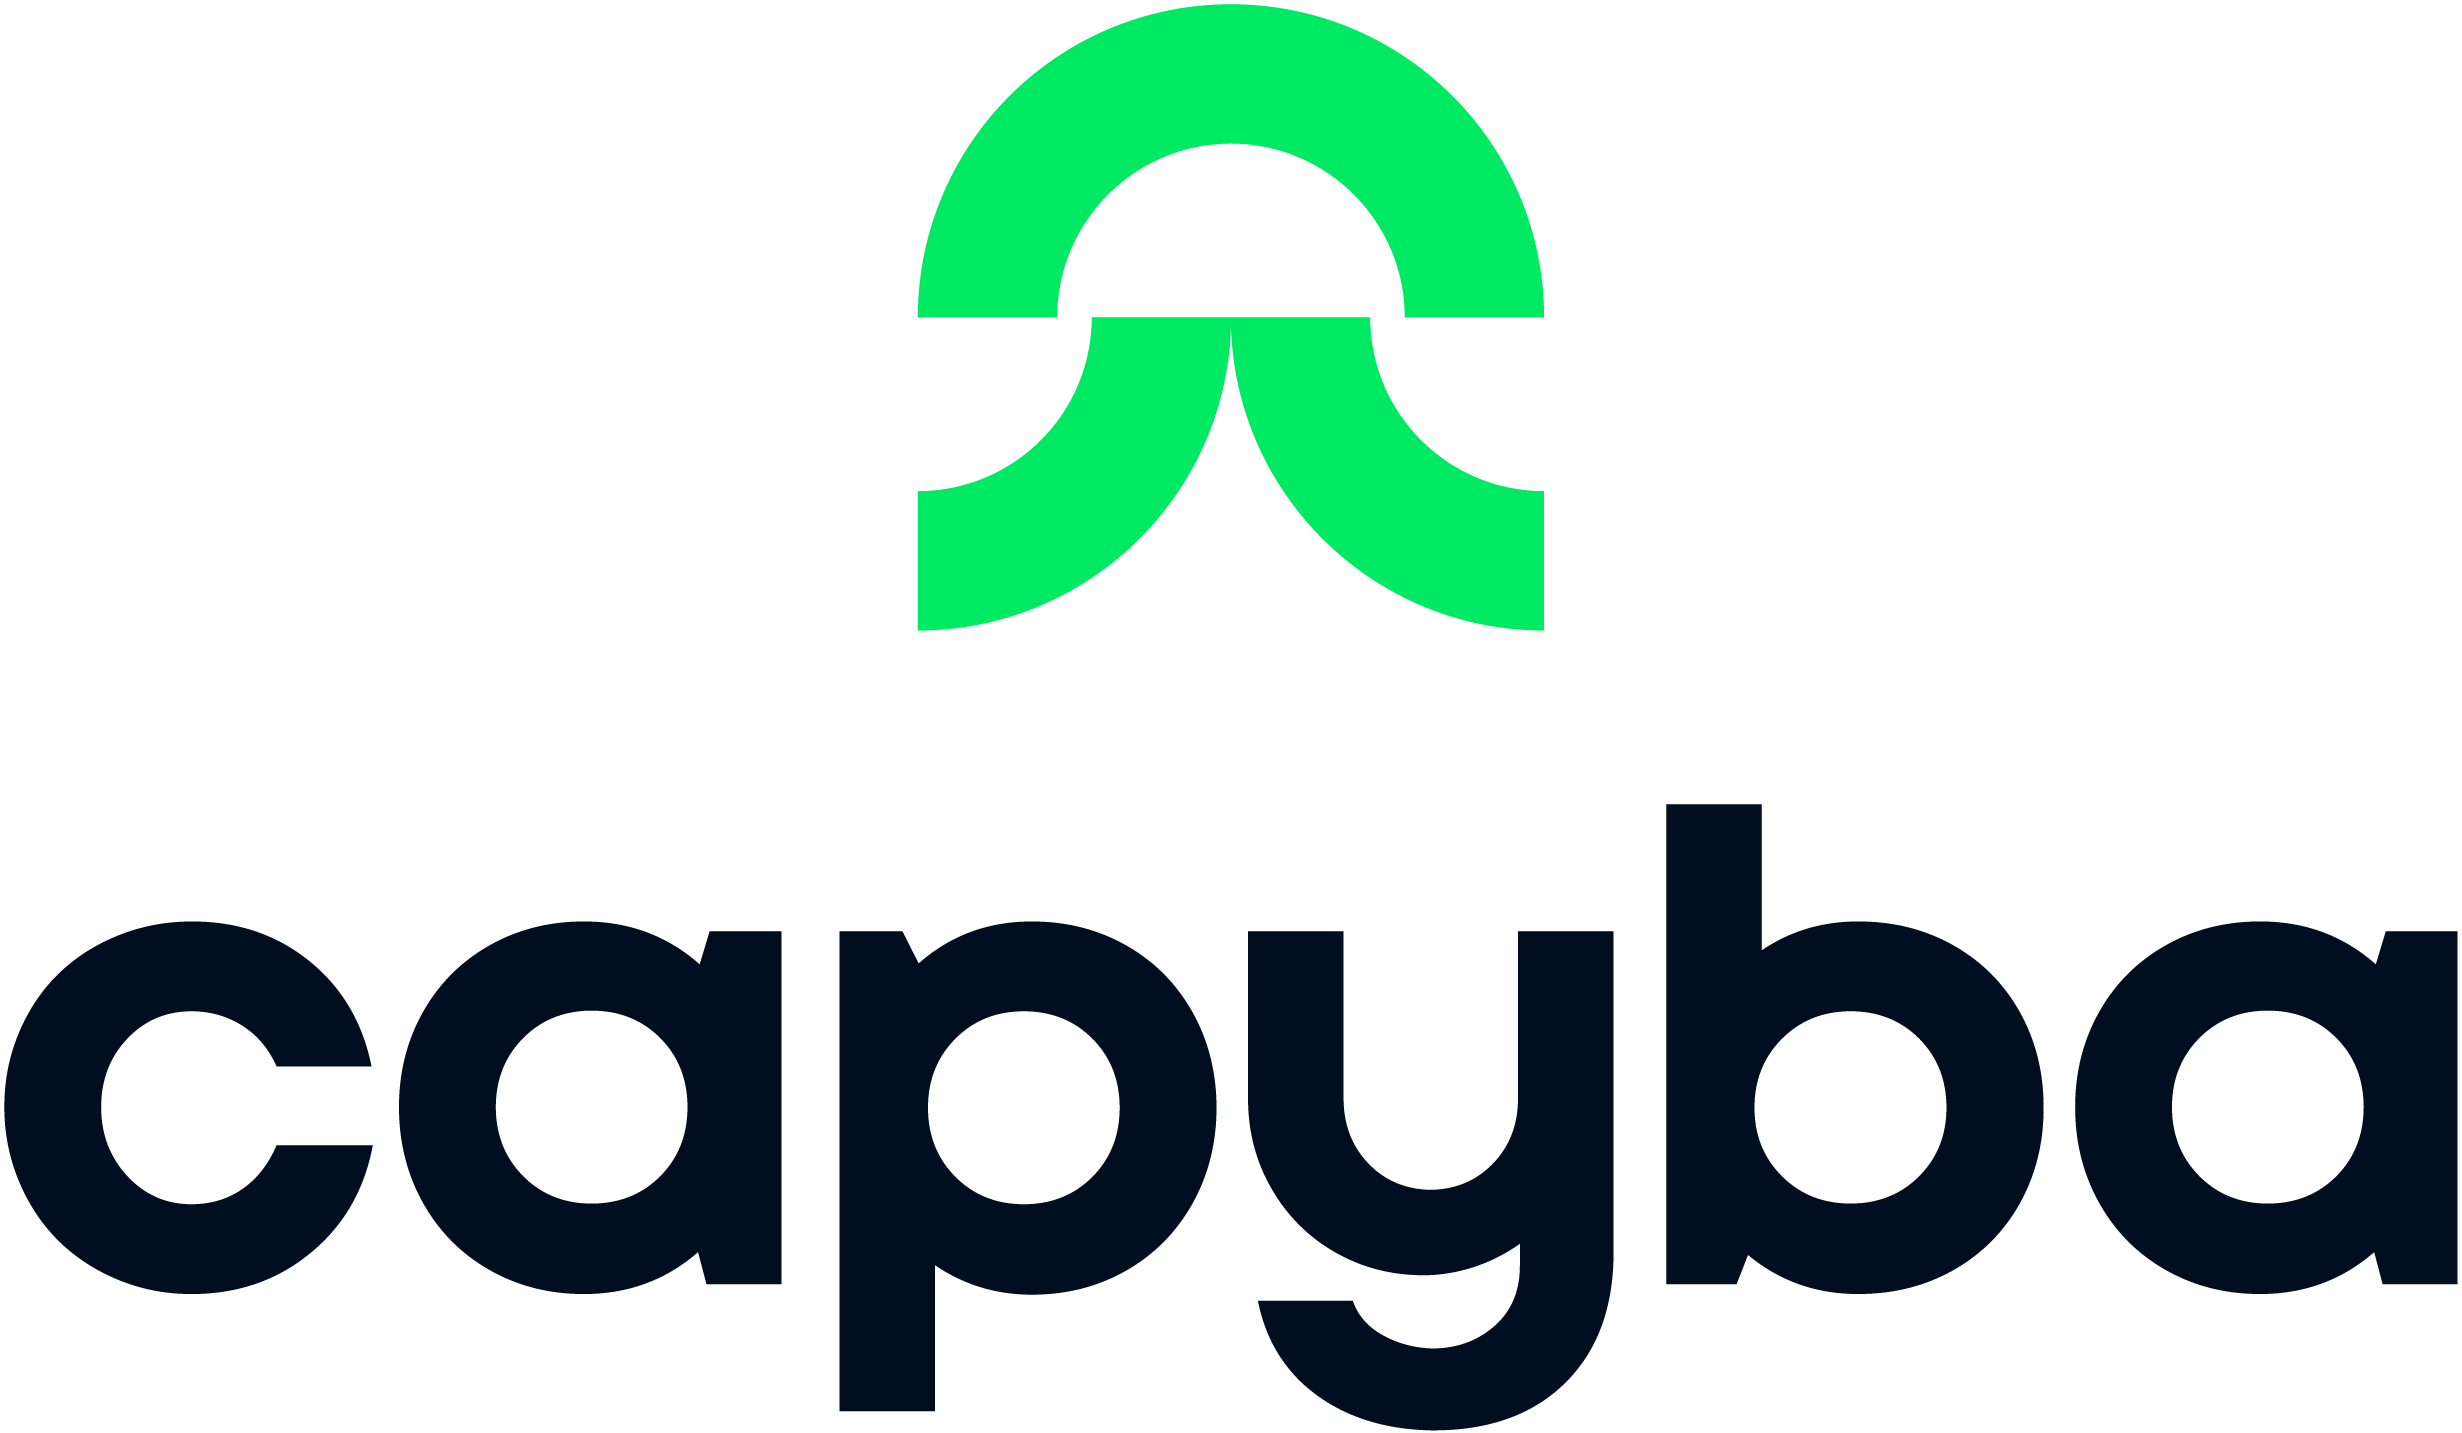 Capyba Software Logo